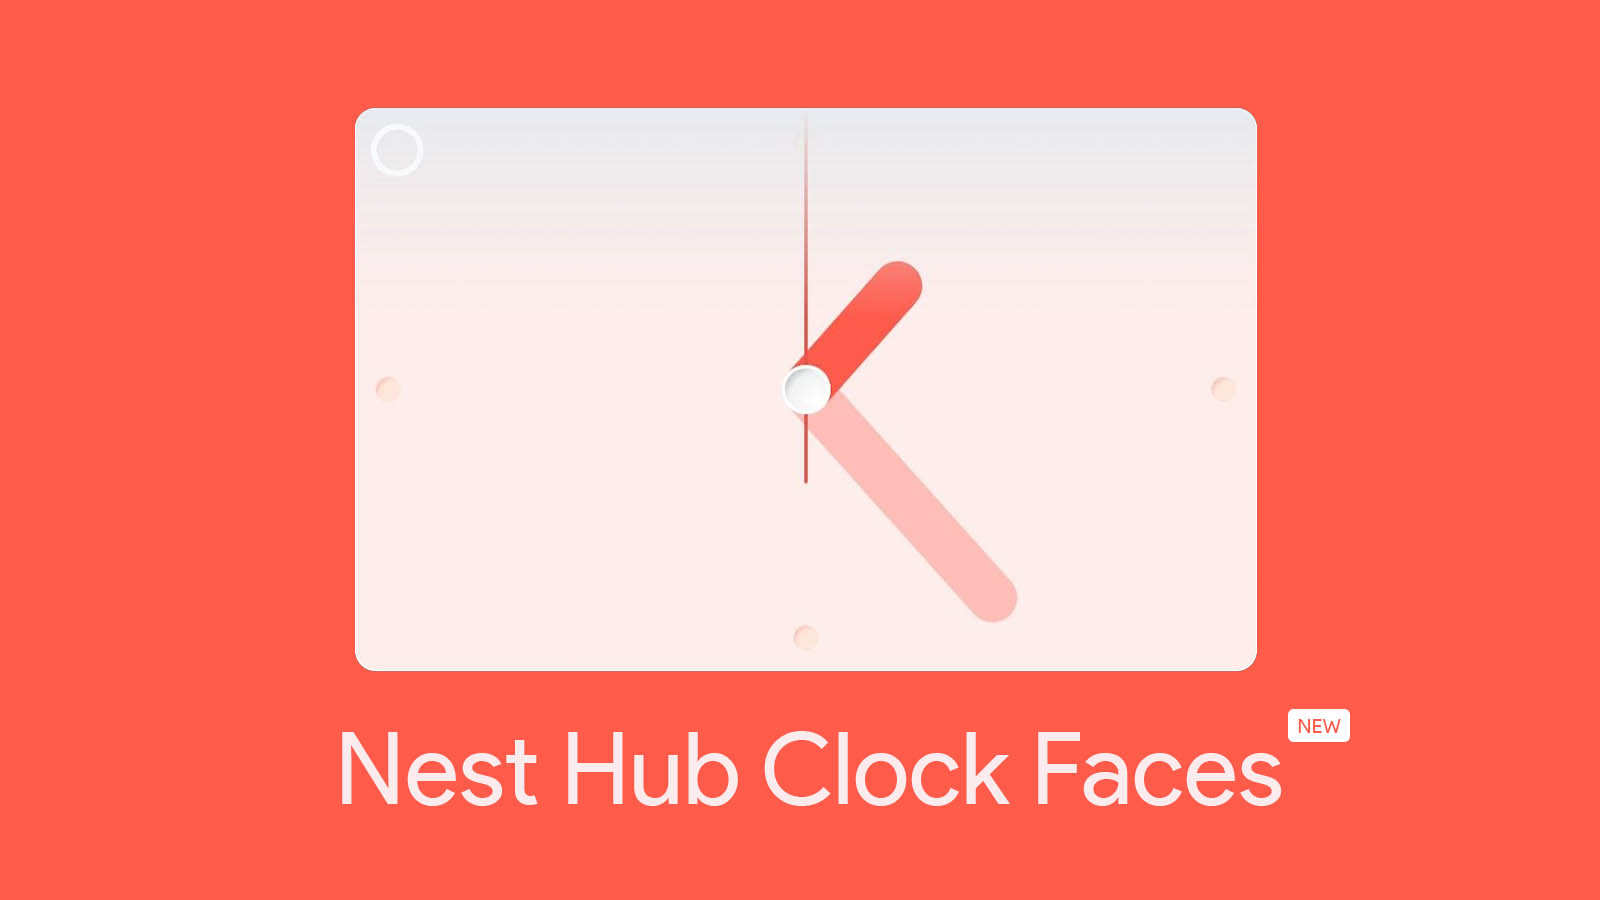 New clock face designs could be coming to Nest Hub devices